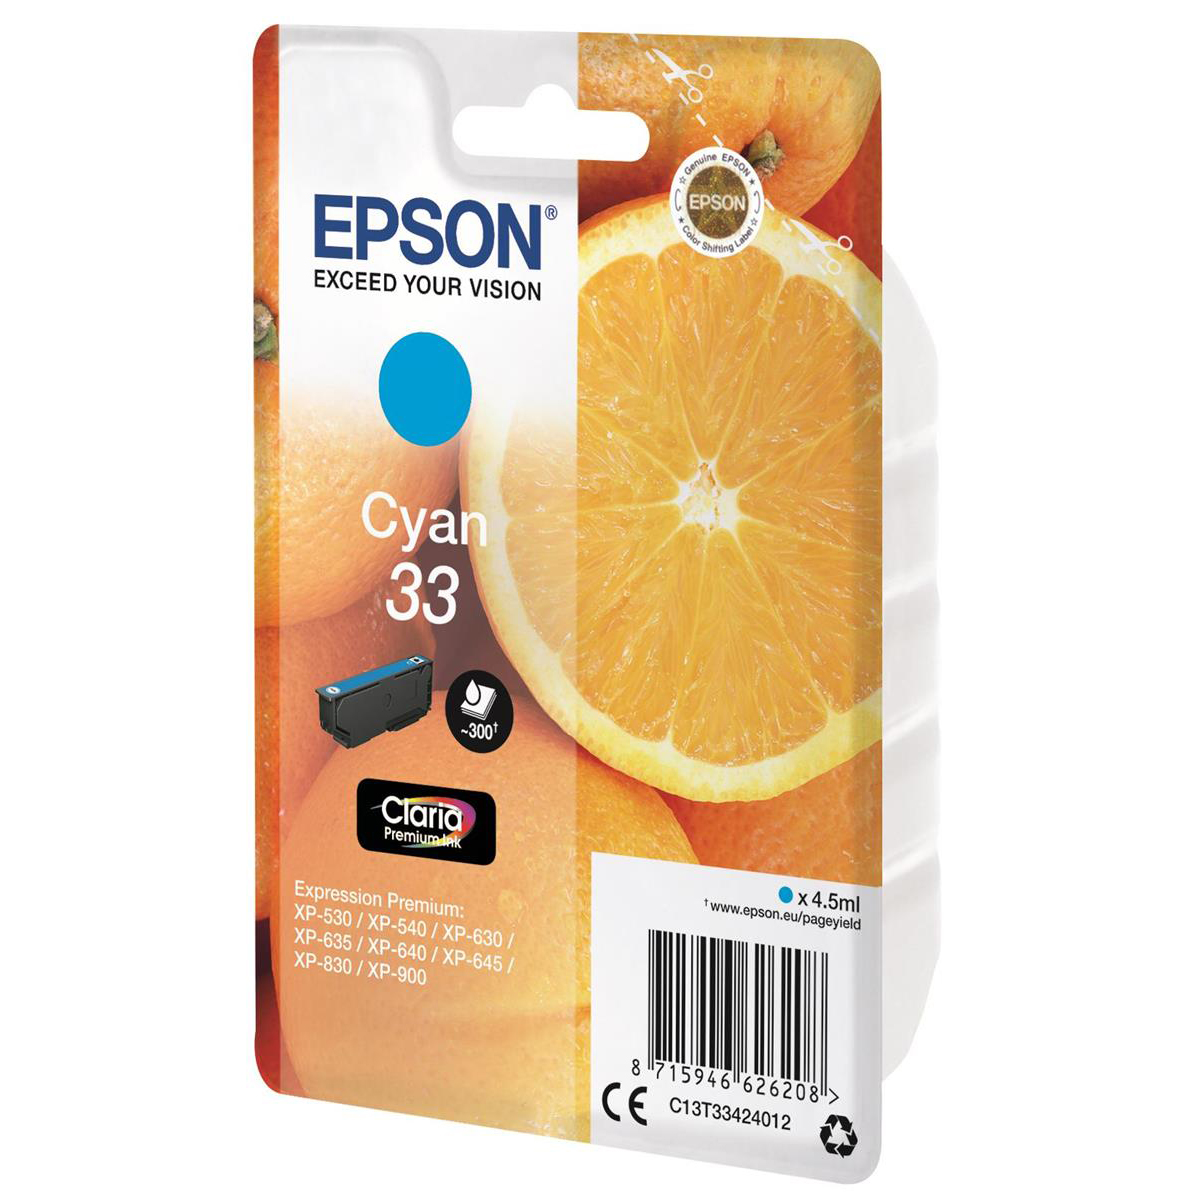 Epson T33 Inkjet Cartridge Orange Page Life 300pp 4.5ml Cyan Ref C13T33424012